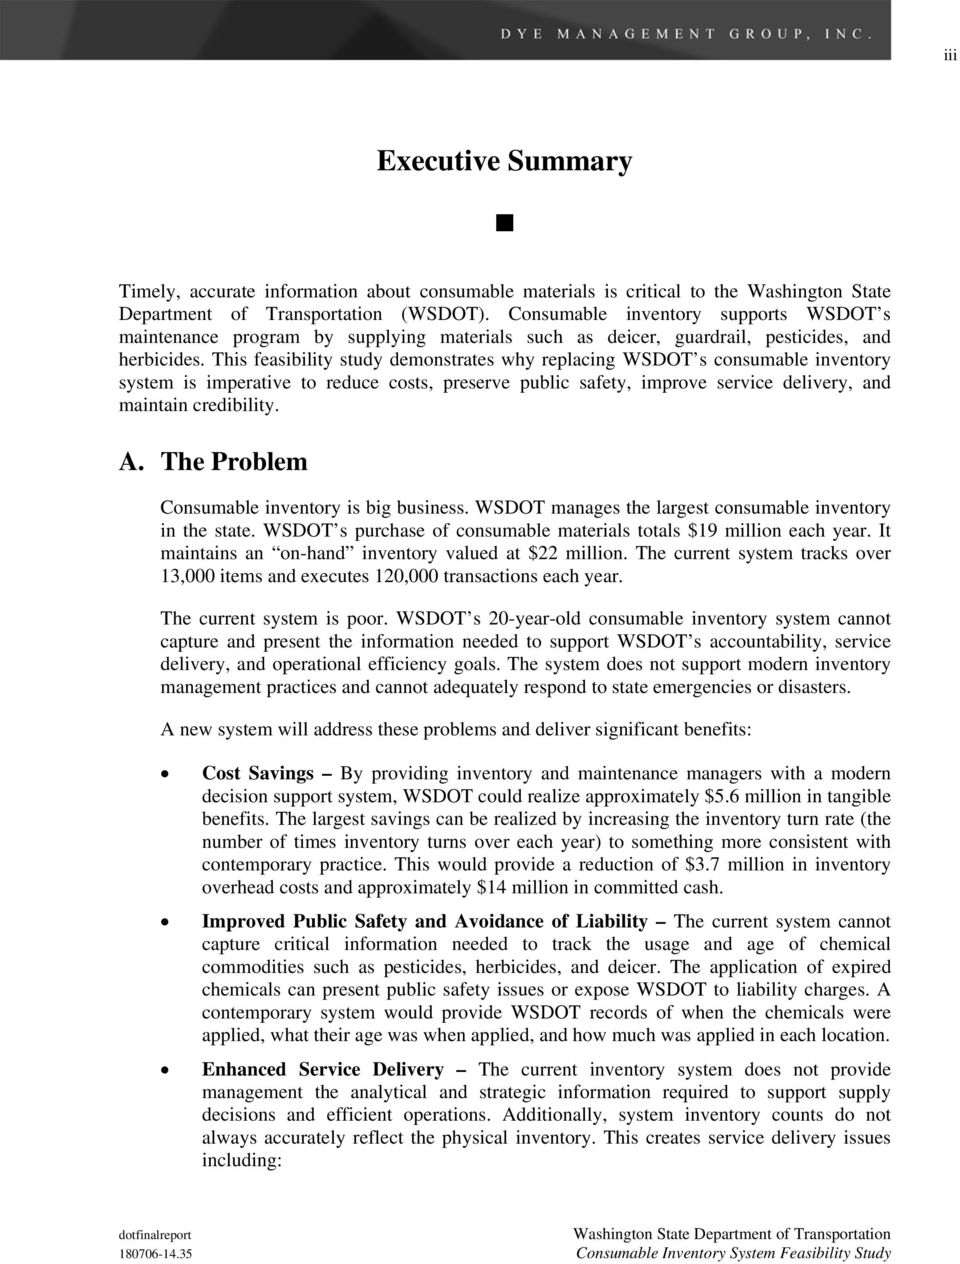 Consumable Inventory System Feasibility Study - PDF